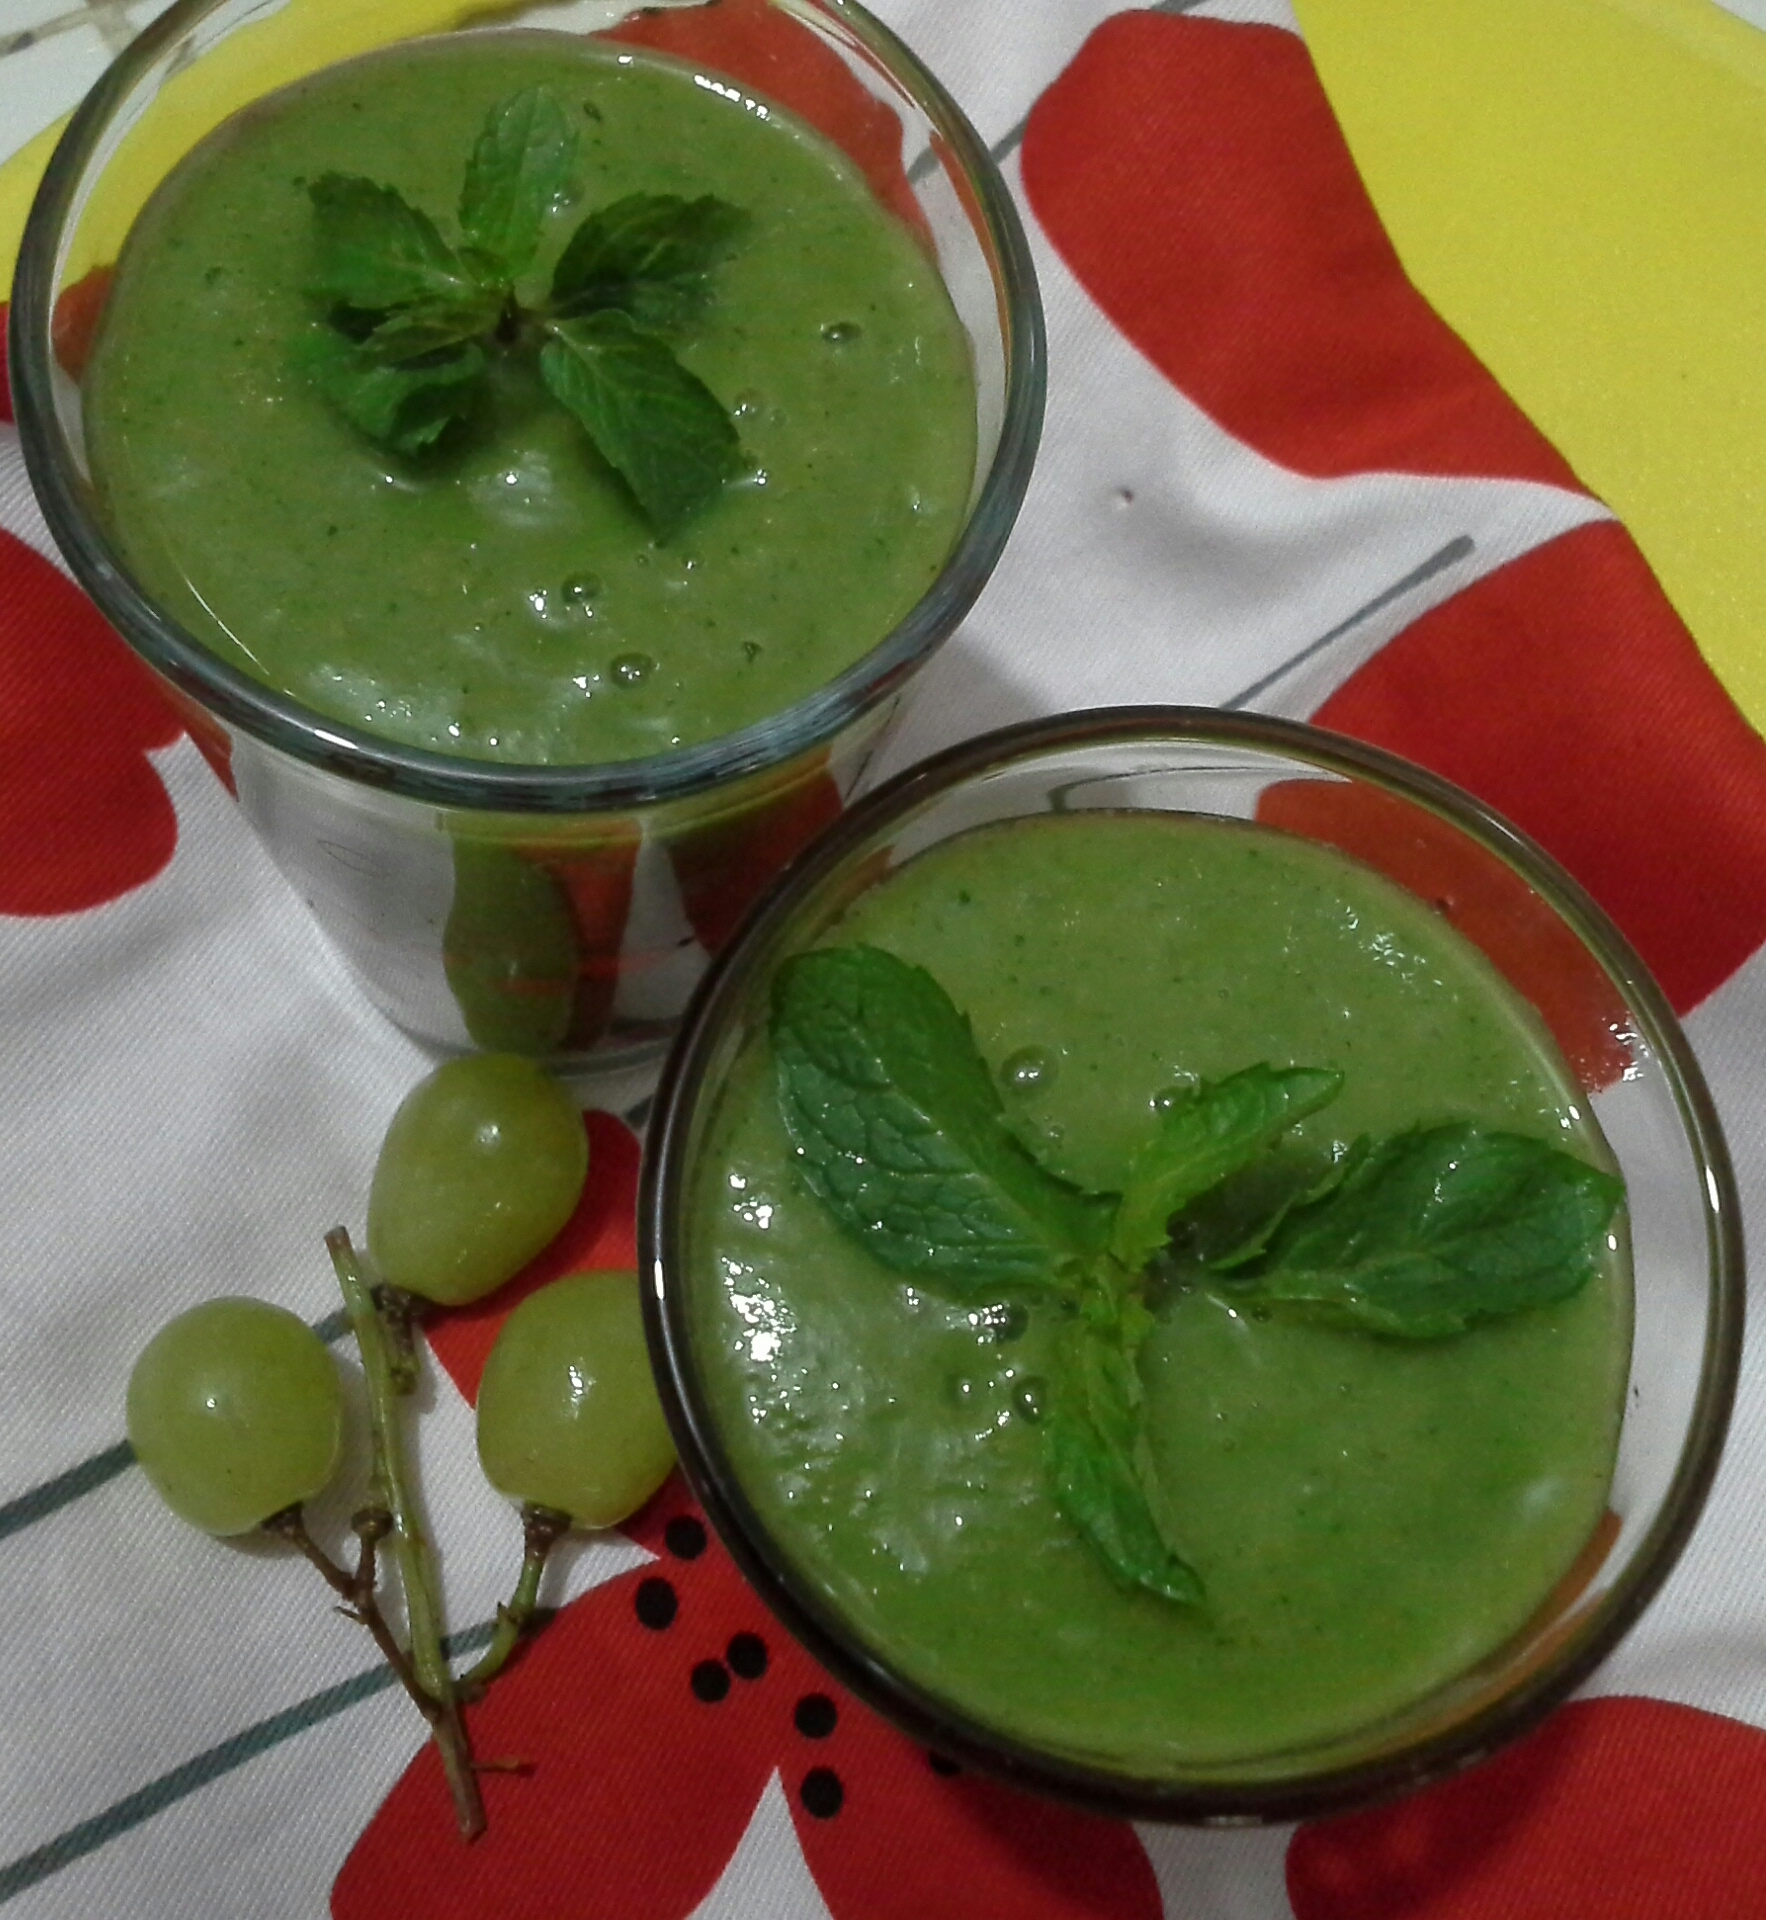 Garnish with mint leaves or grapes